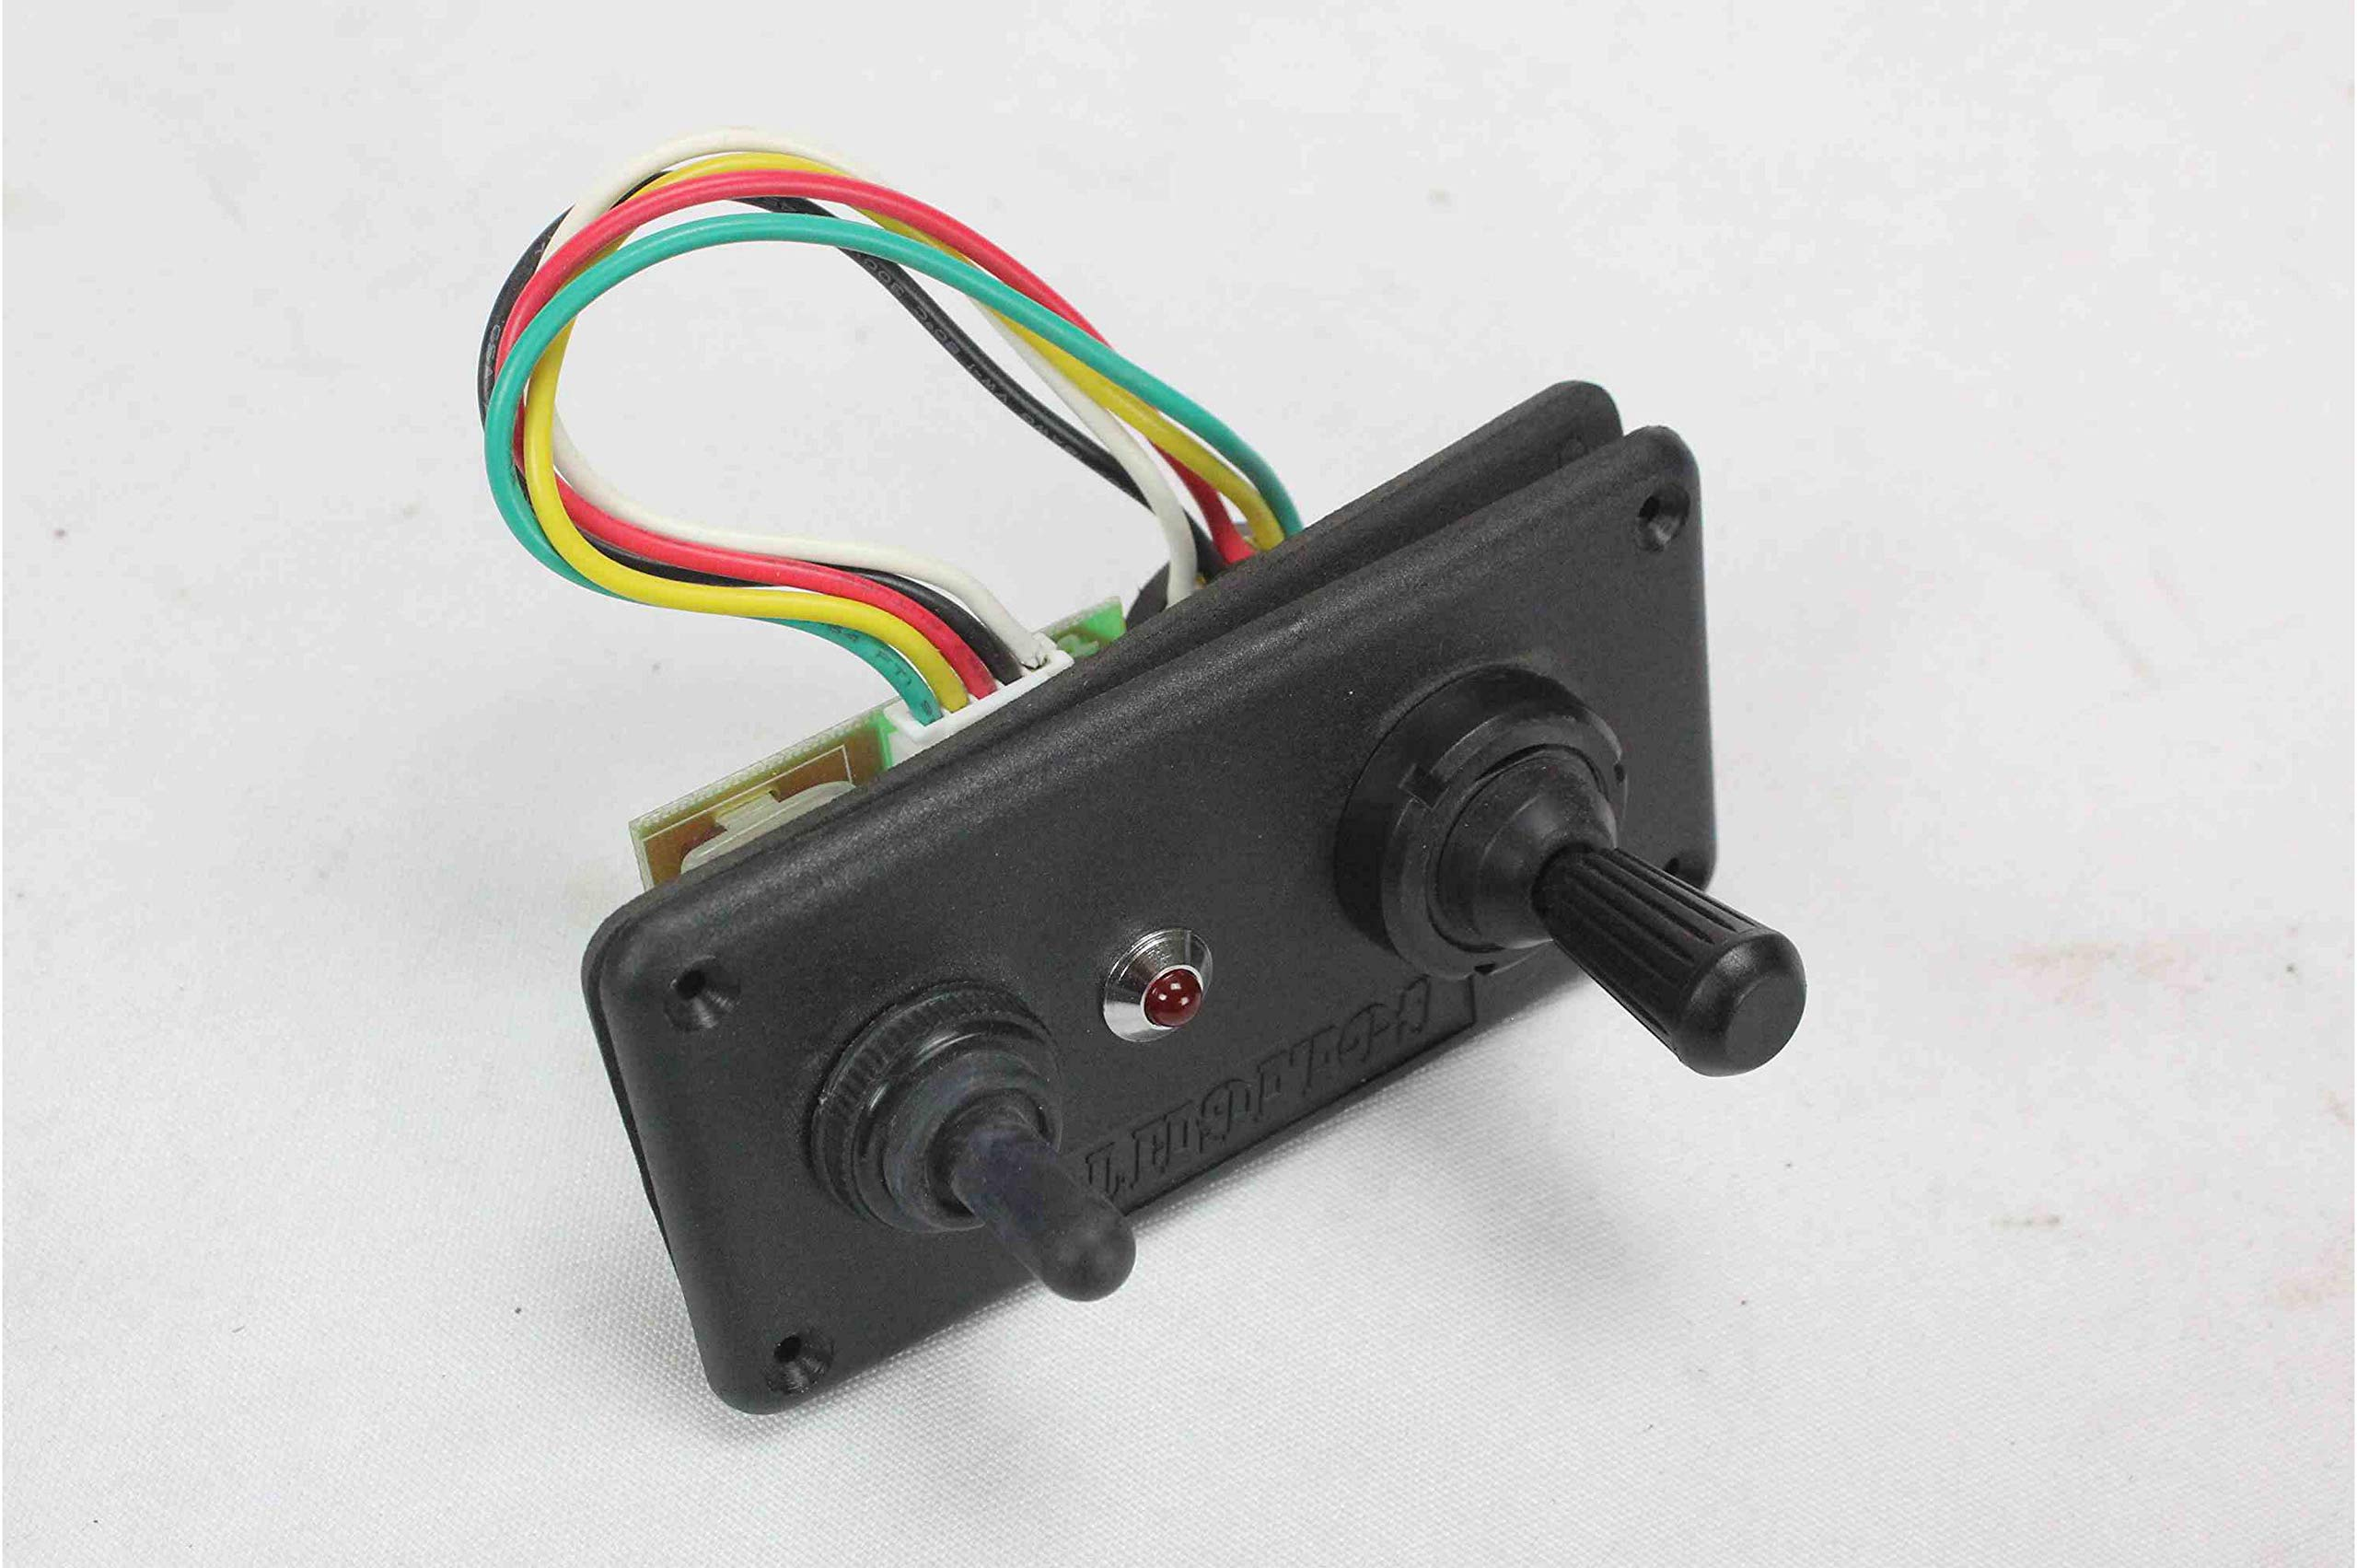 GL-2067-D Dash Mount Remote Control for Golight 2067 Spotlight by Larson Electronics